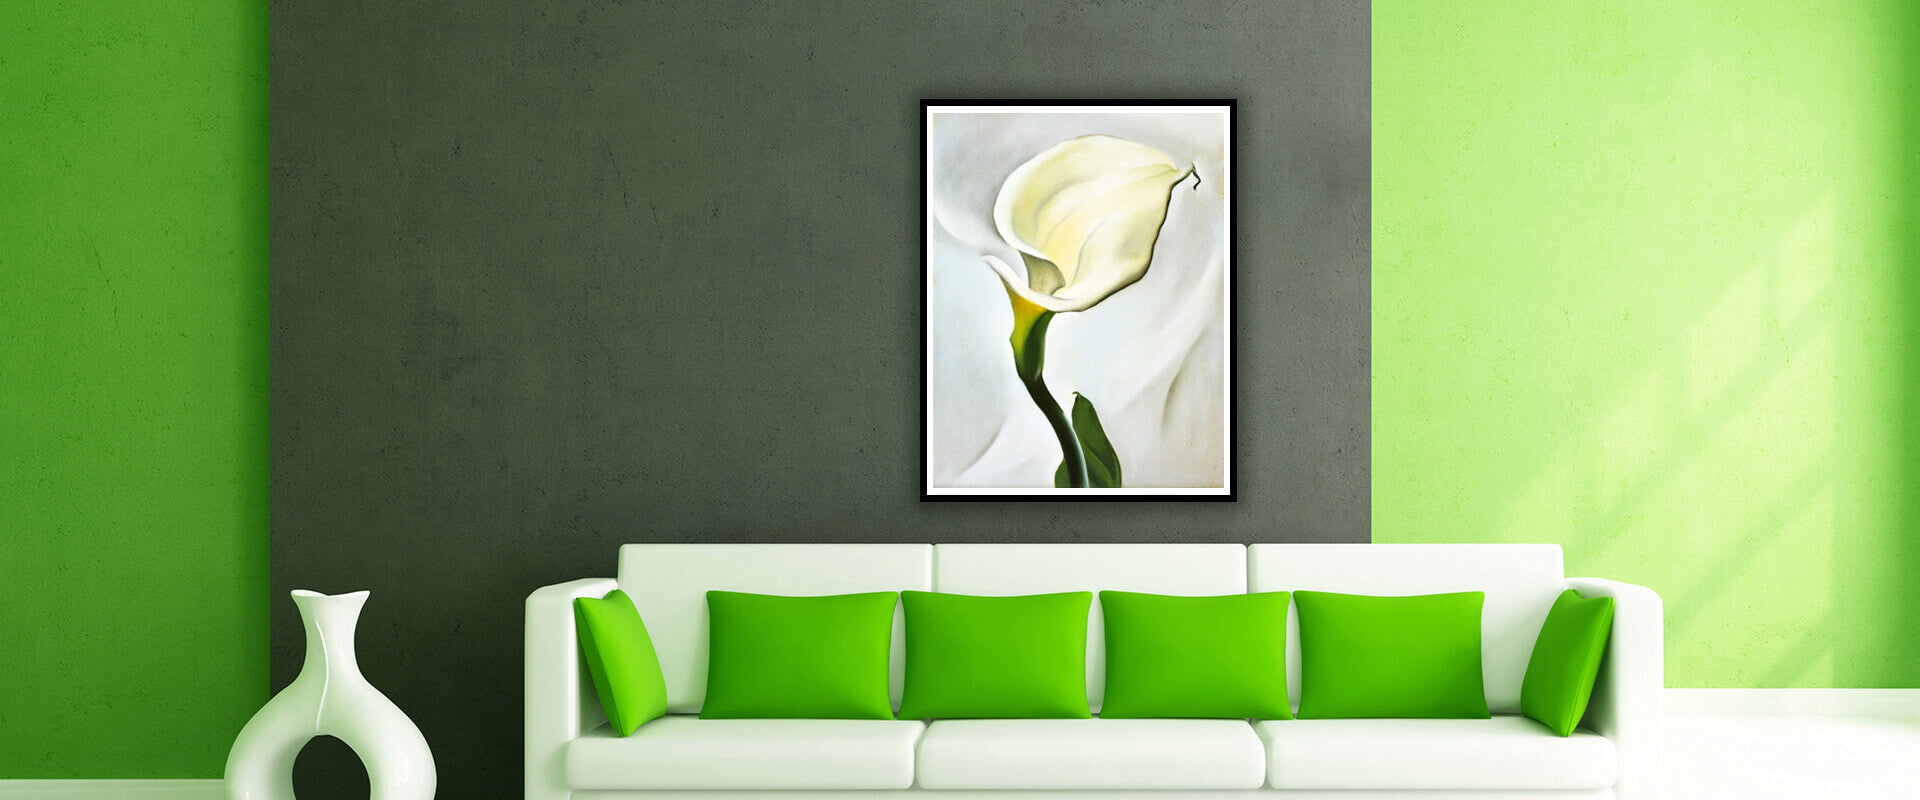 Georgia O'Keeffe Artworks Collection | Buy Posters, Frames, Canvas, Digital Art & Large Size Prints Of The Famous Old Master's Artworks